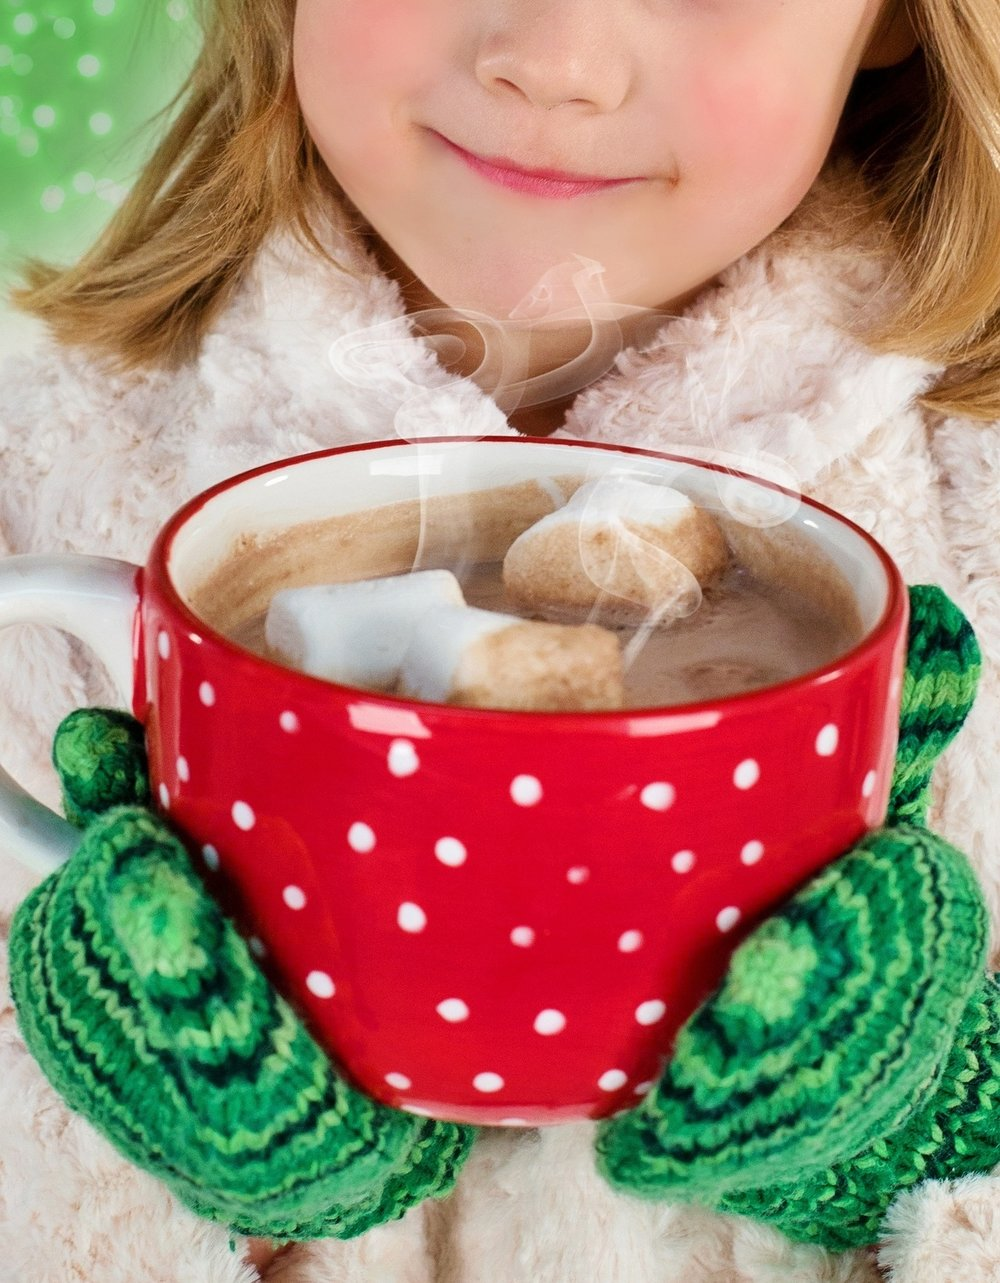 Hot Chocolate: A Hudson Valley Staple - By Katie Maus